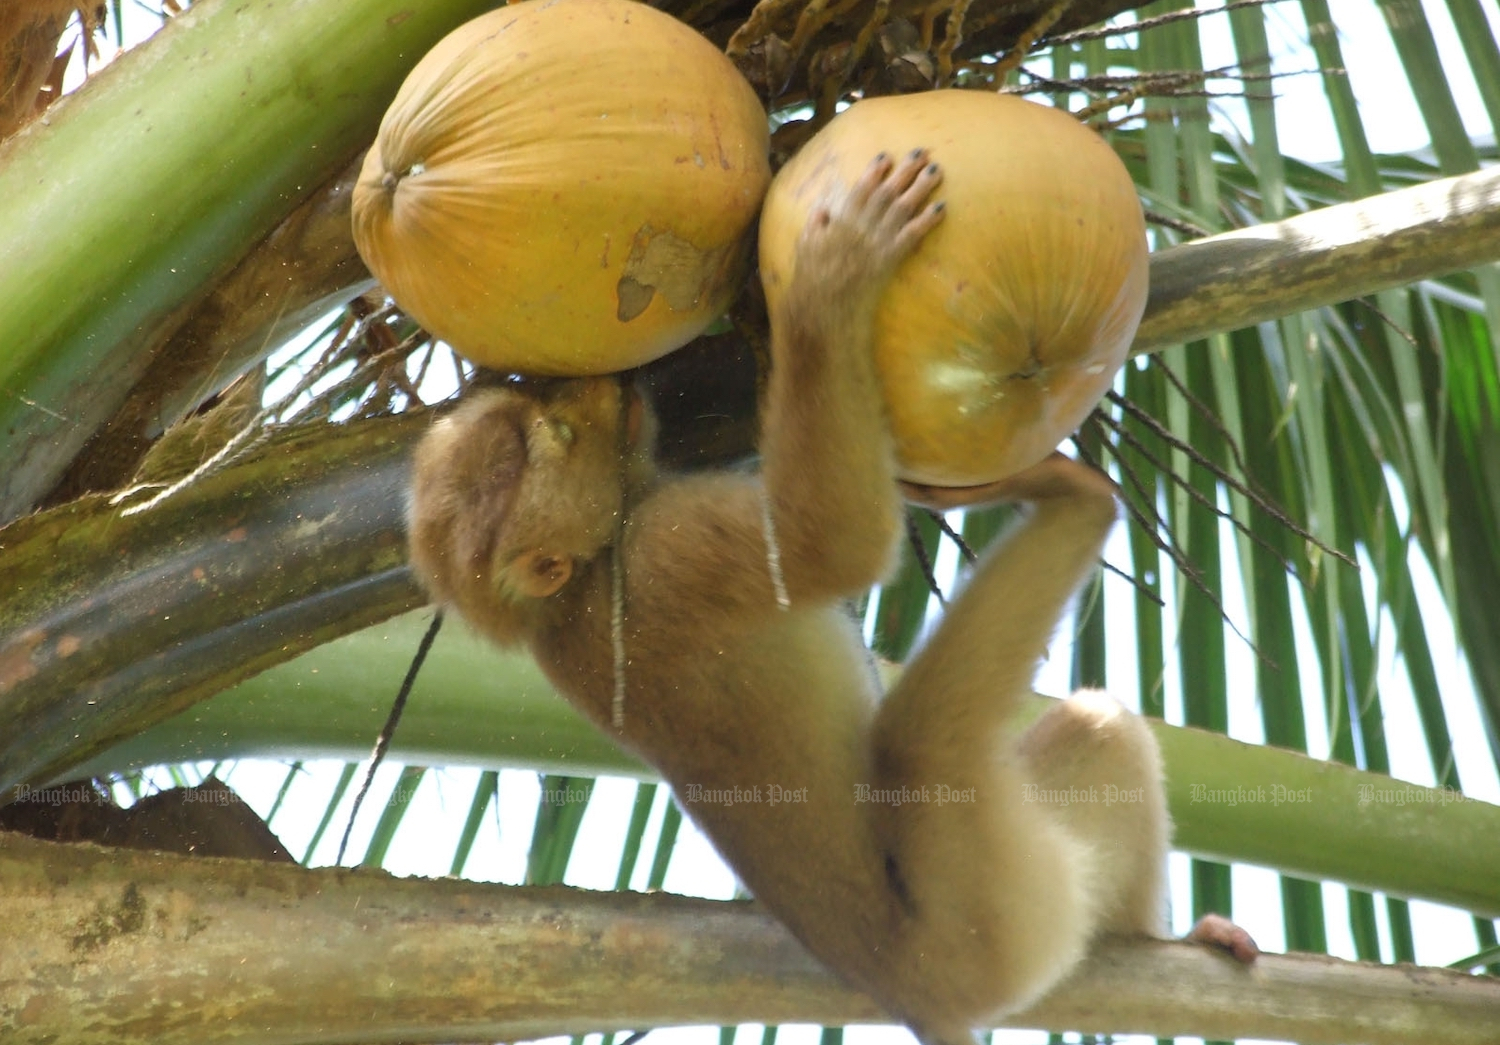 Coconut items picked by monkeys removed from supermarkets in England